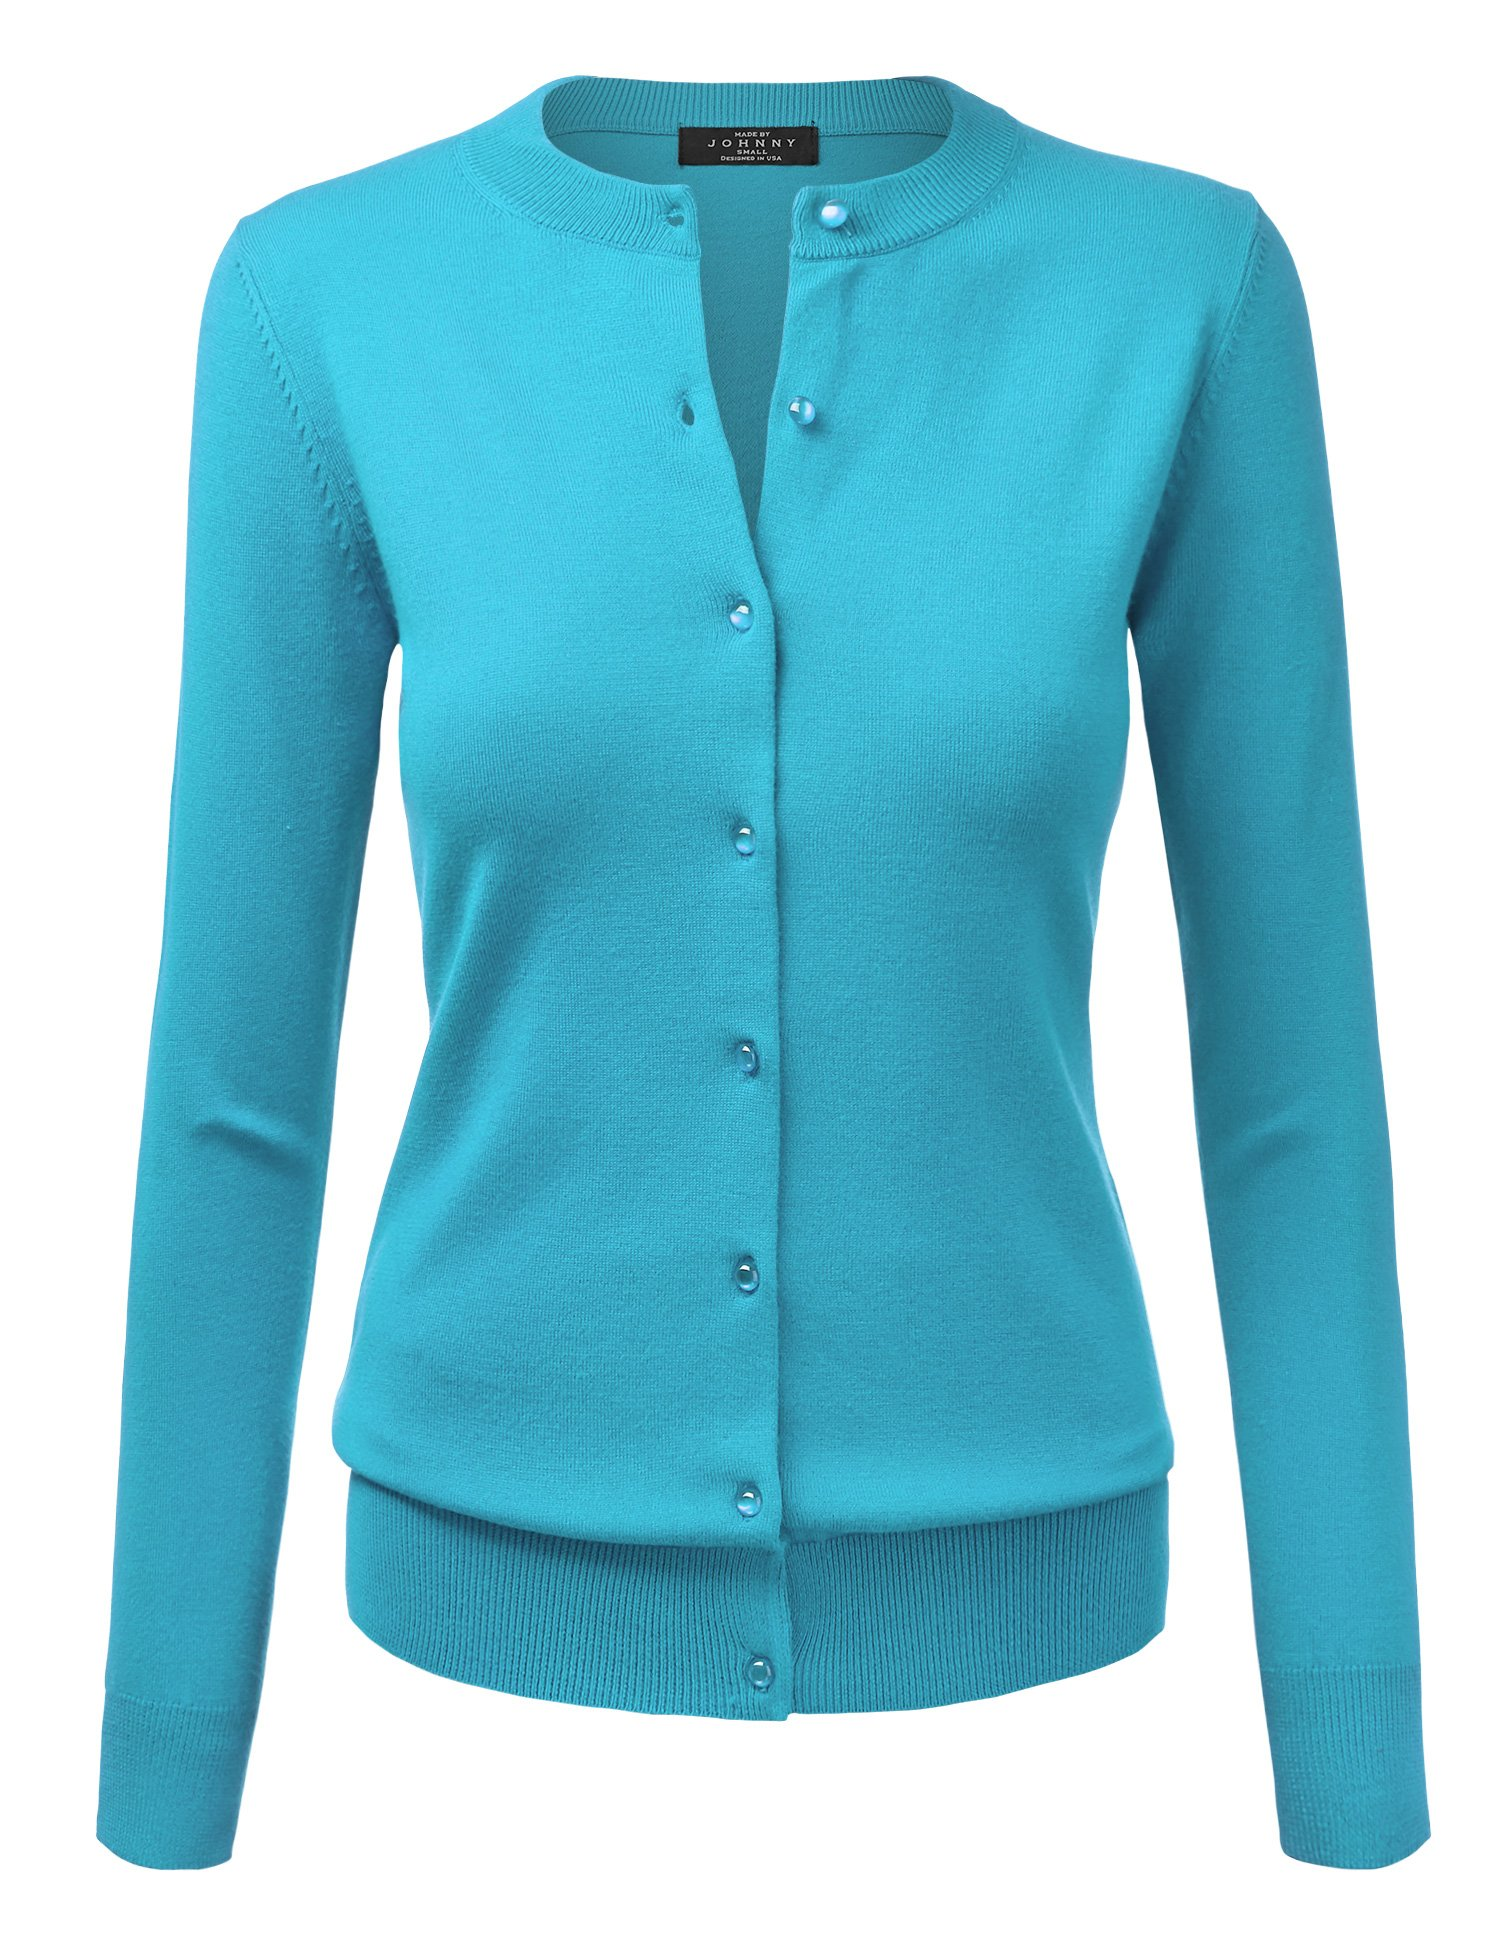 Made By Johnny WSK781 Womens Keep It Classic Round Cardigan XXL Aqua